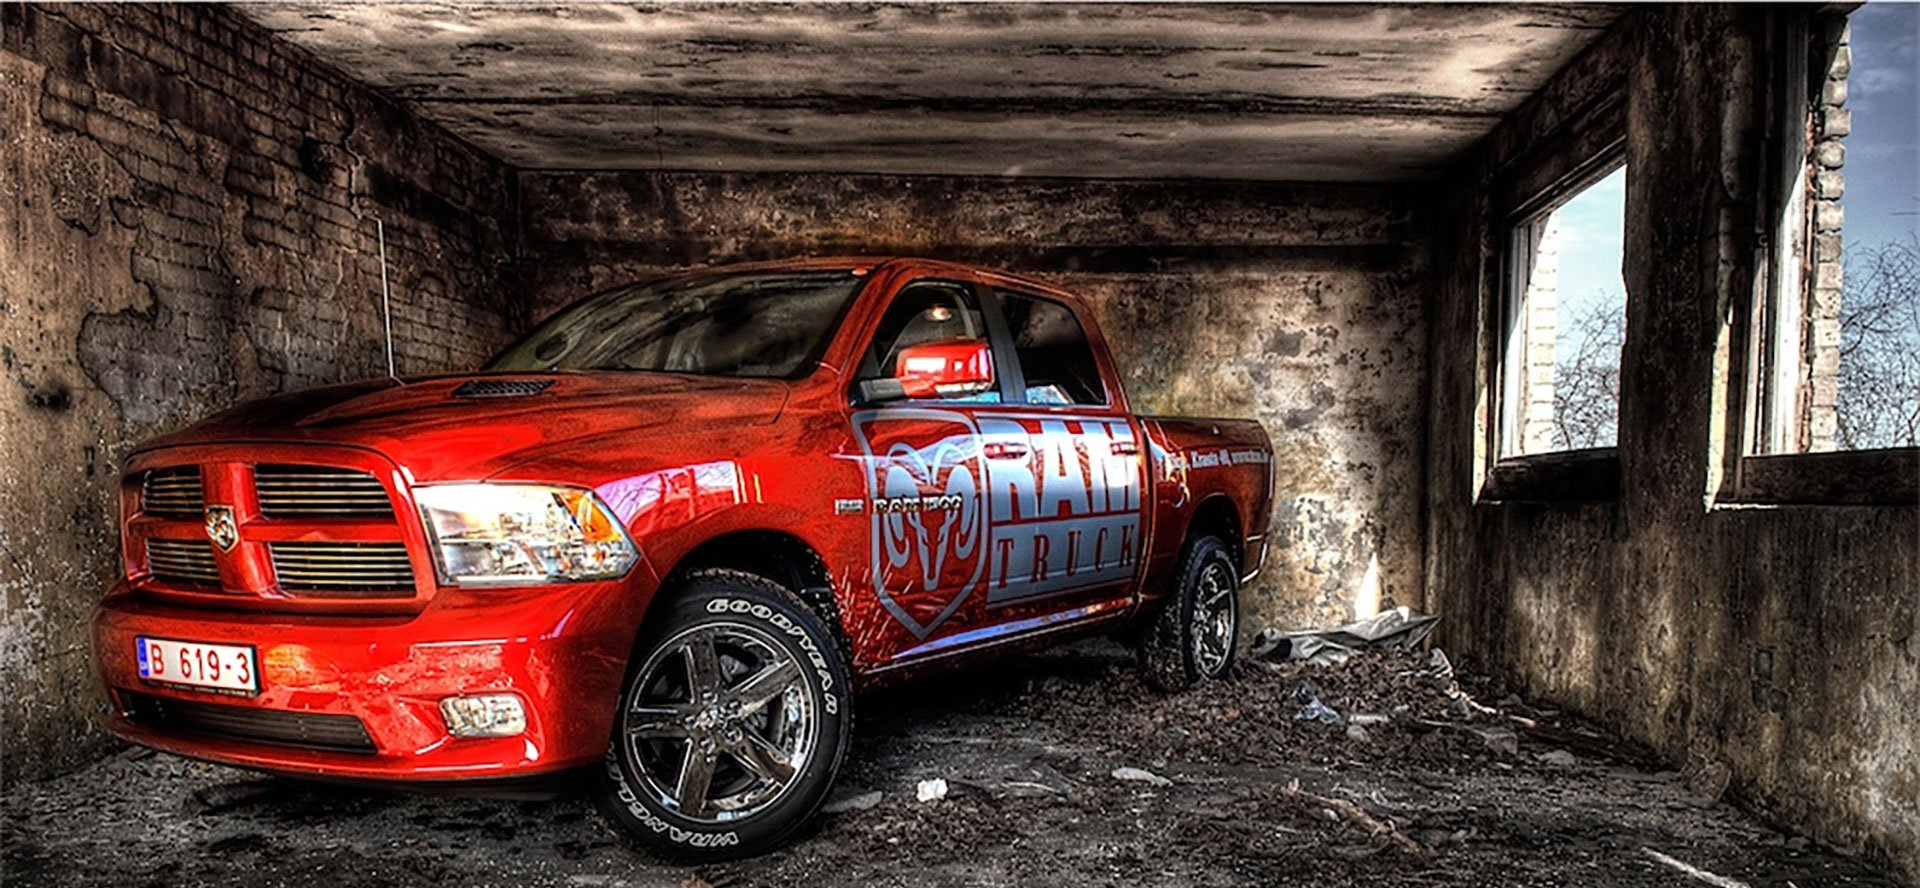 red sports truck